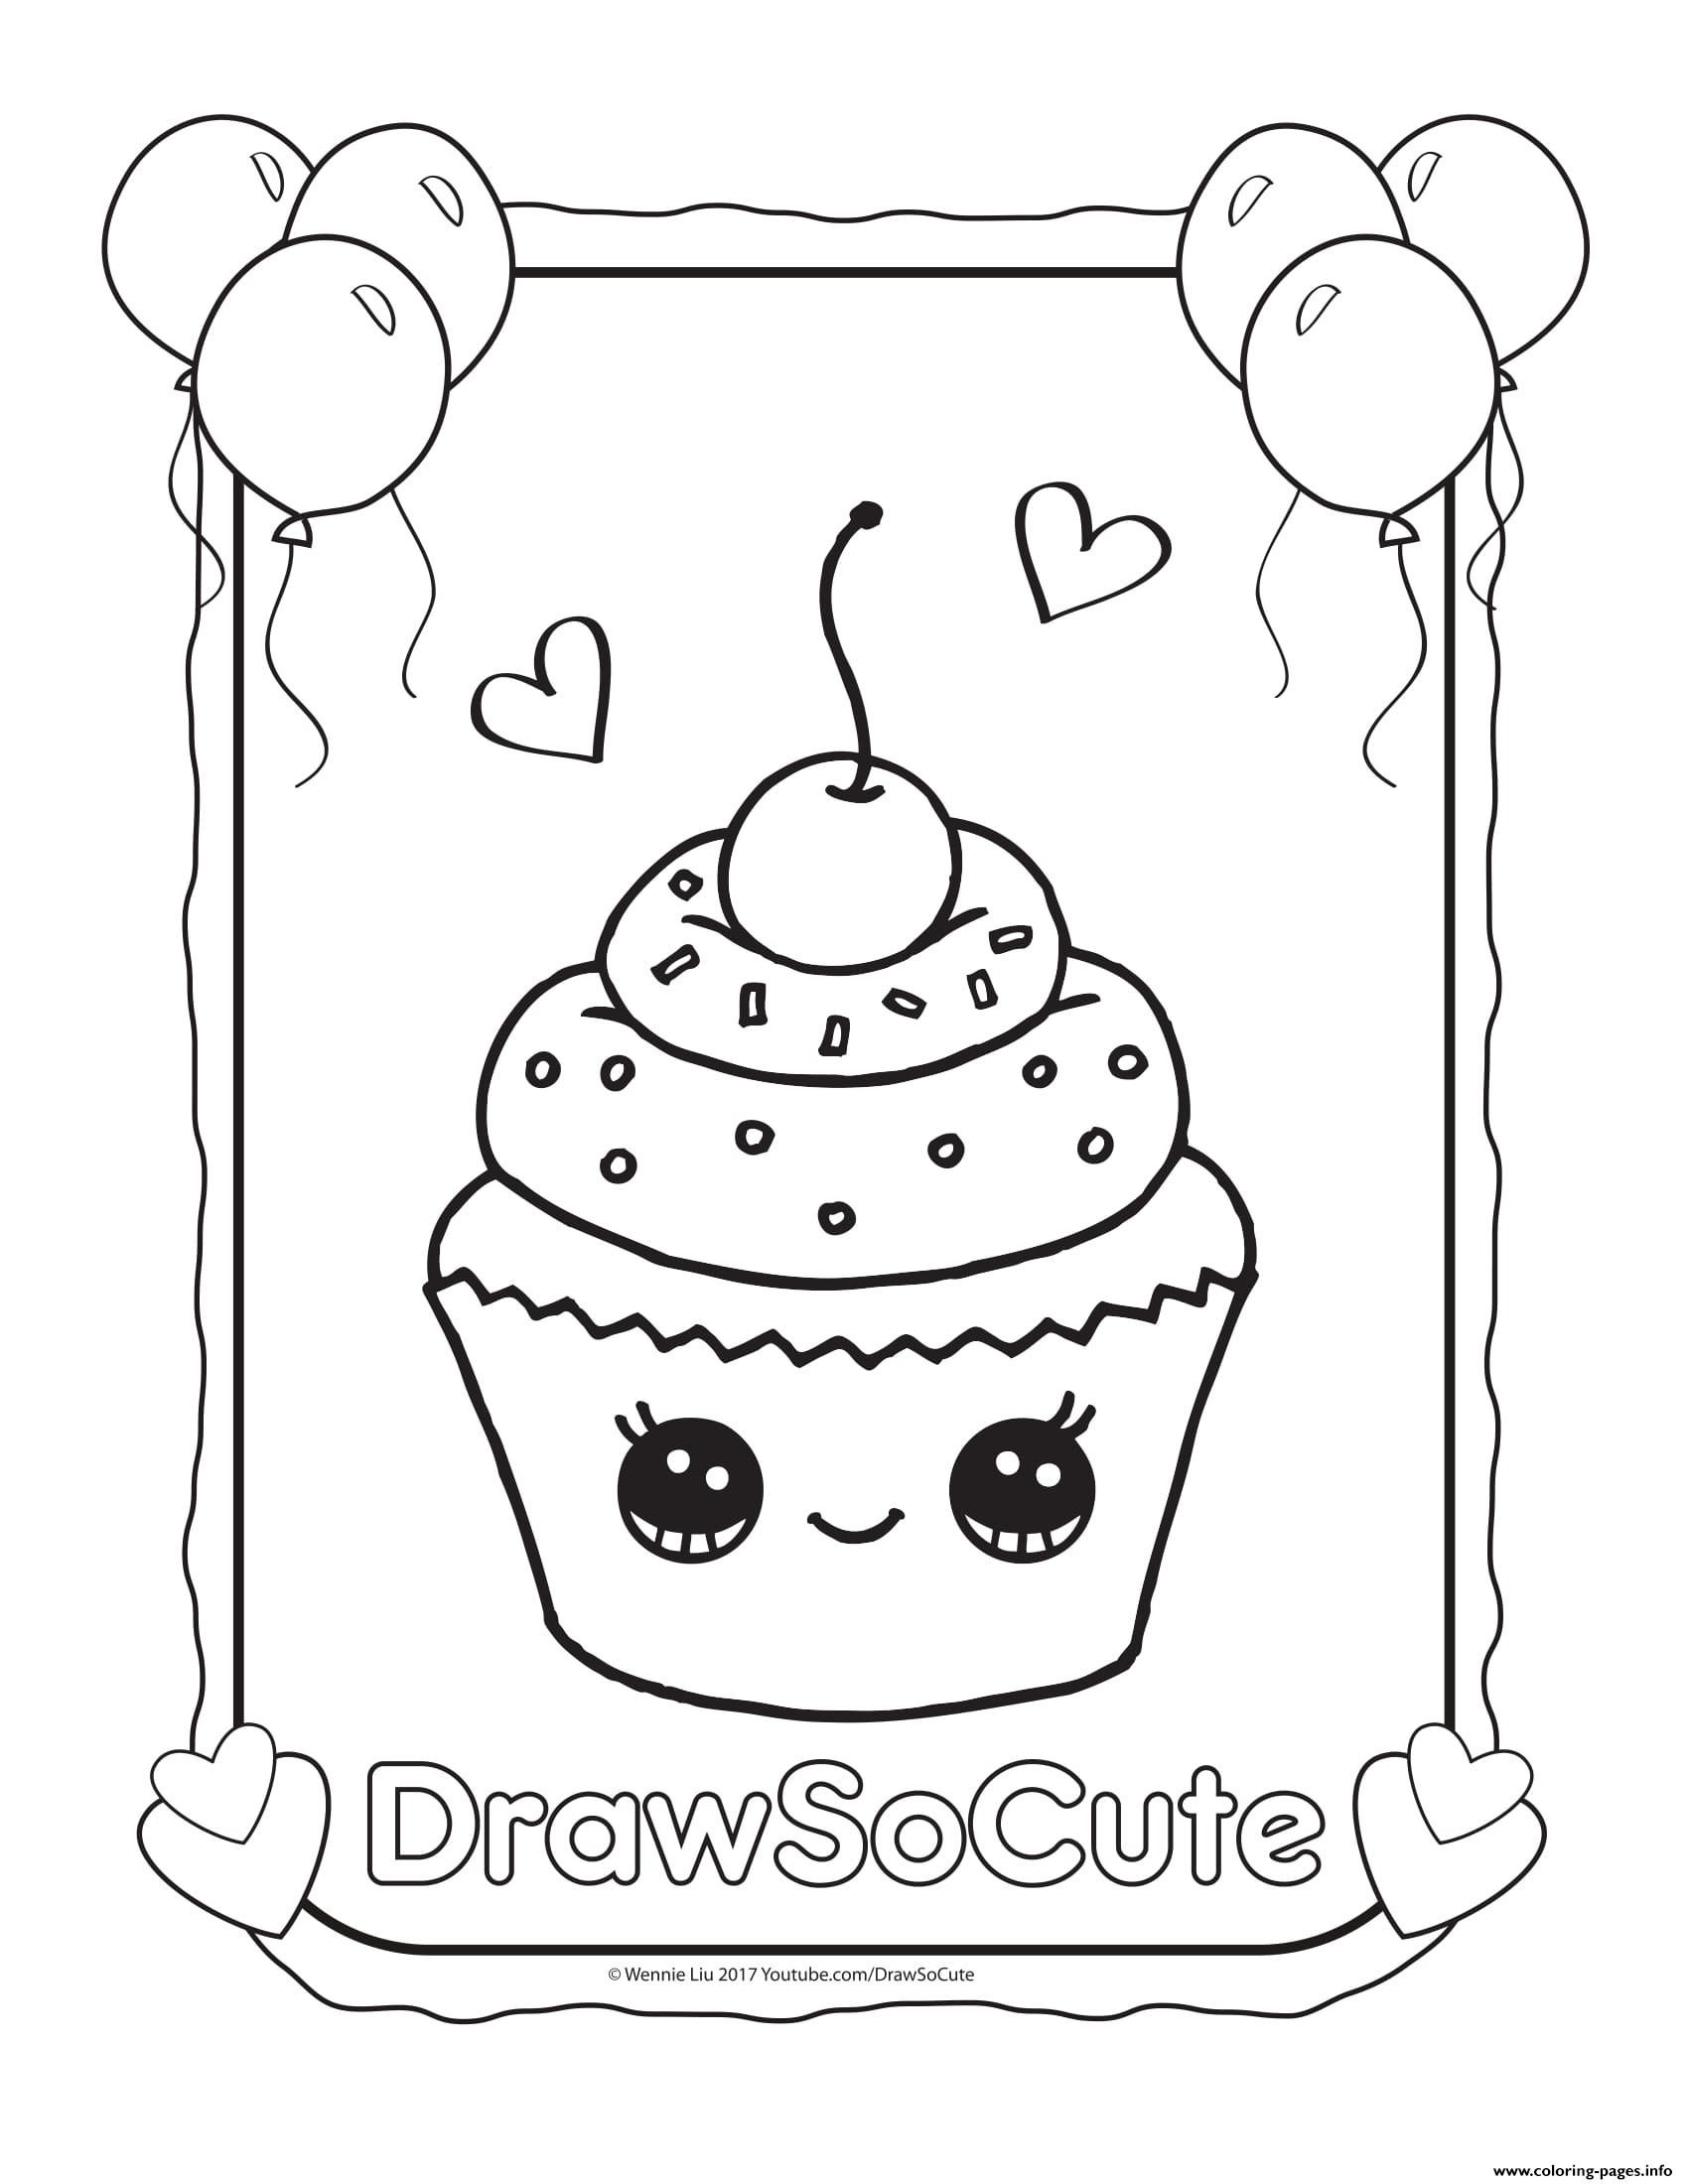 Coloring Pages To Print Out Murderthestout Cute Coloring Pages Happy Birthday Coloring Pages Cupcake Coloring Pages